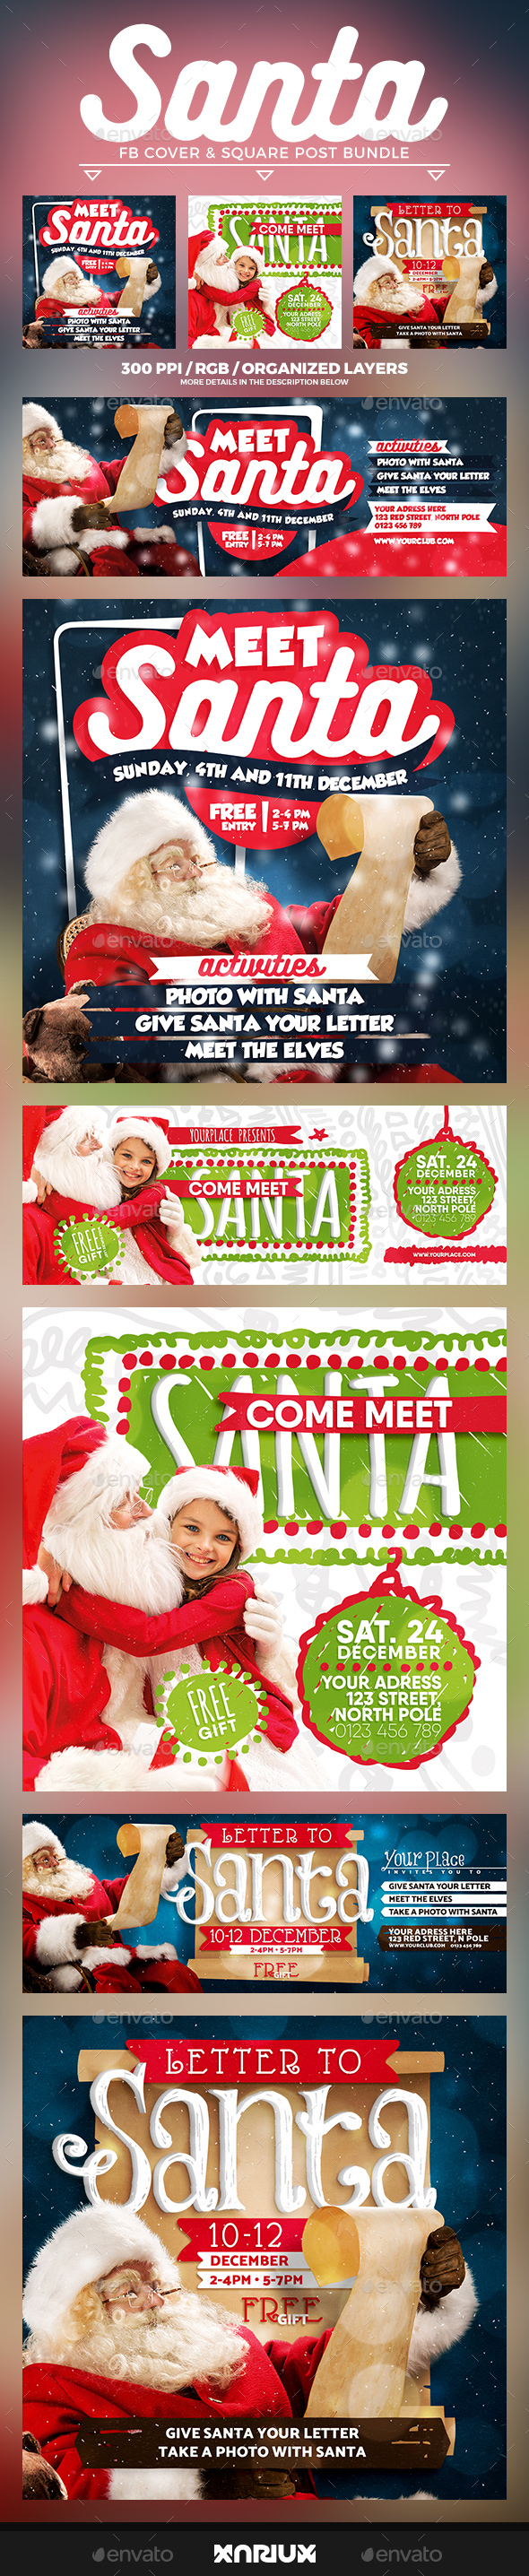 GraphicRiver Meet Santa Facebook Cover Bundle 20954391